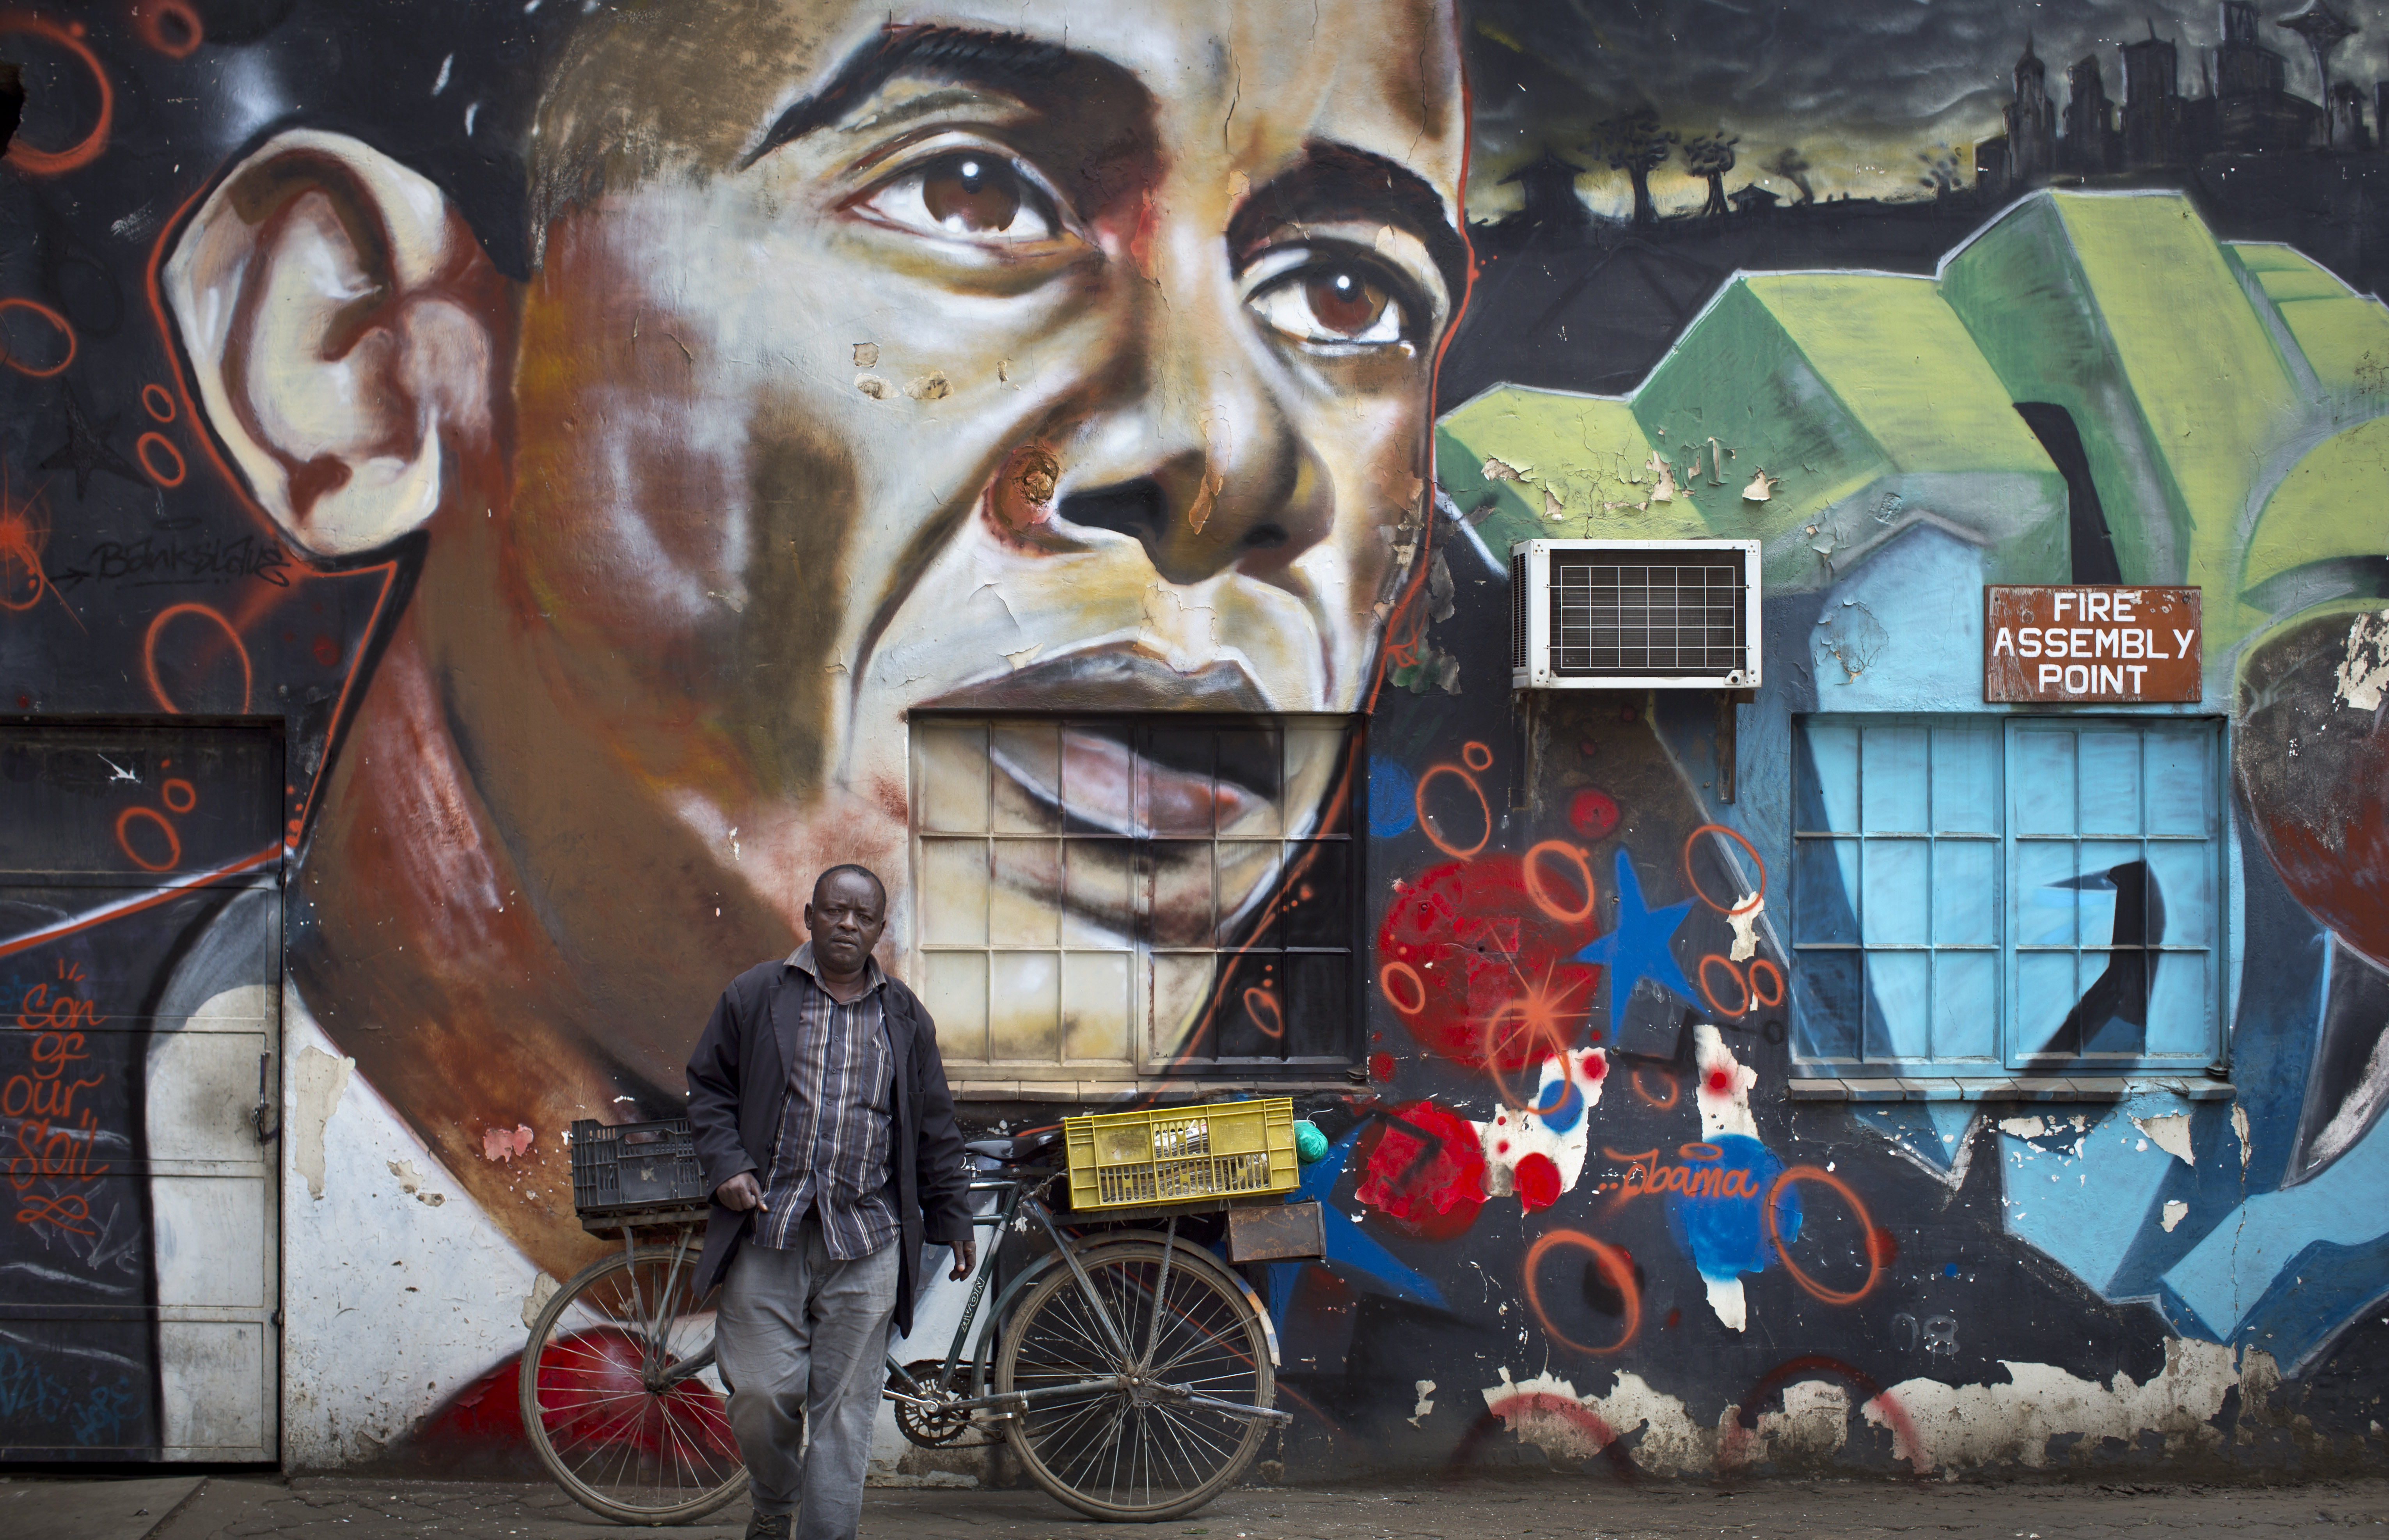 A man walks away after leaning his bicycle against a mural of President Barack Obama, created by the Kenyan graffiti artist Bankslave, at the GoDown Arts Centre in Nairobi on July 22, 2015.